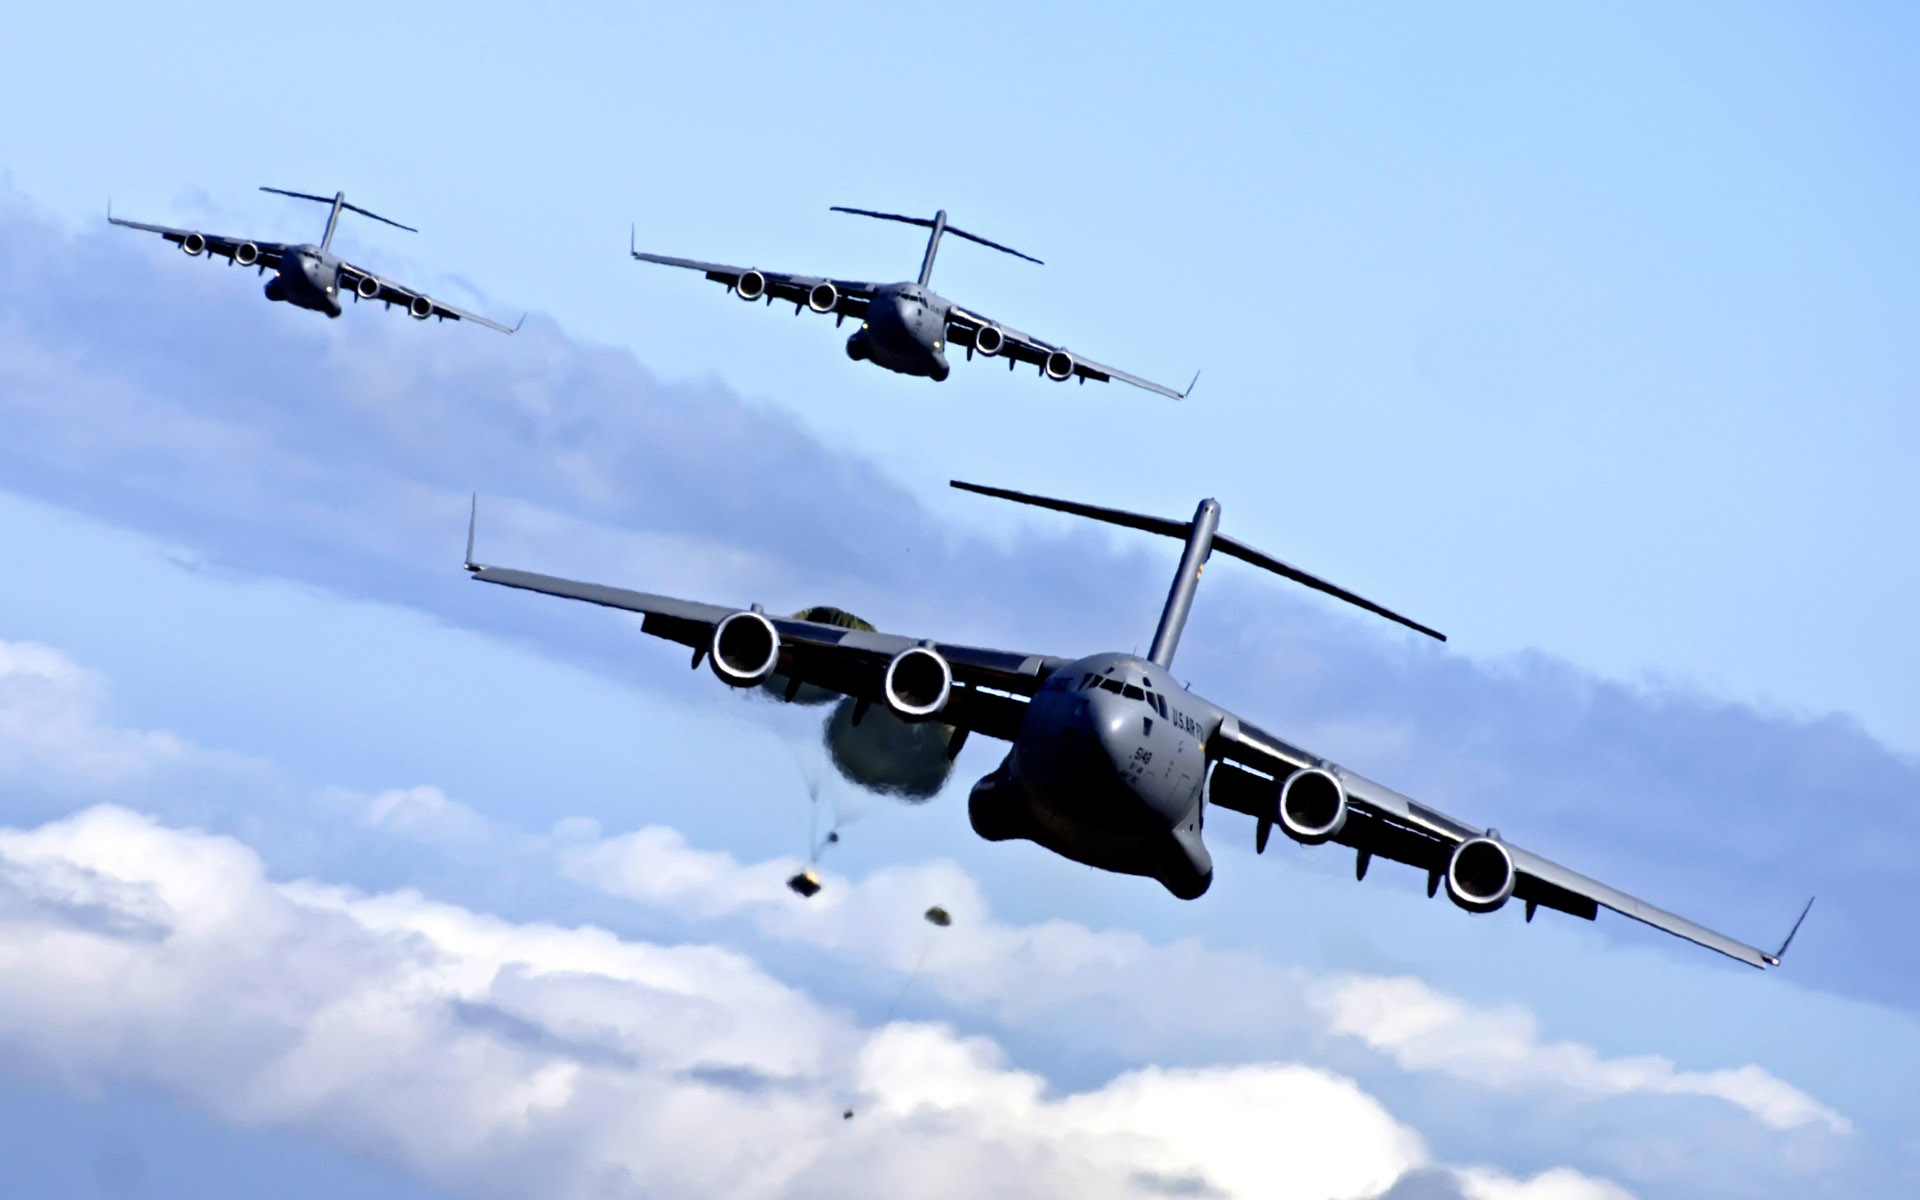 ... of HD Air Force Wallpapers & Aviation Backgrounds For Download